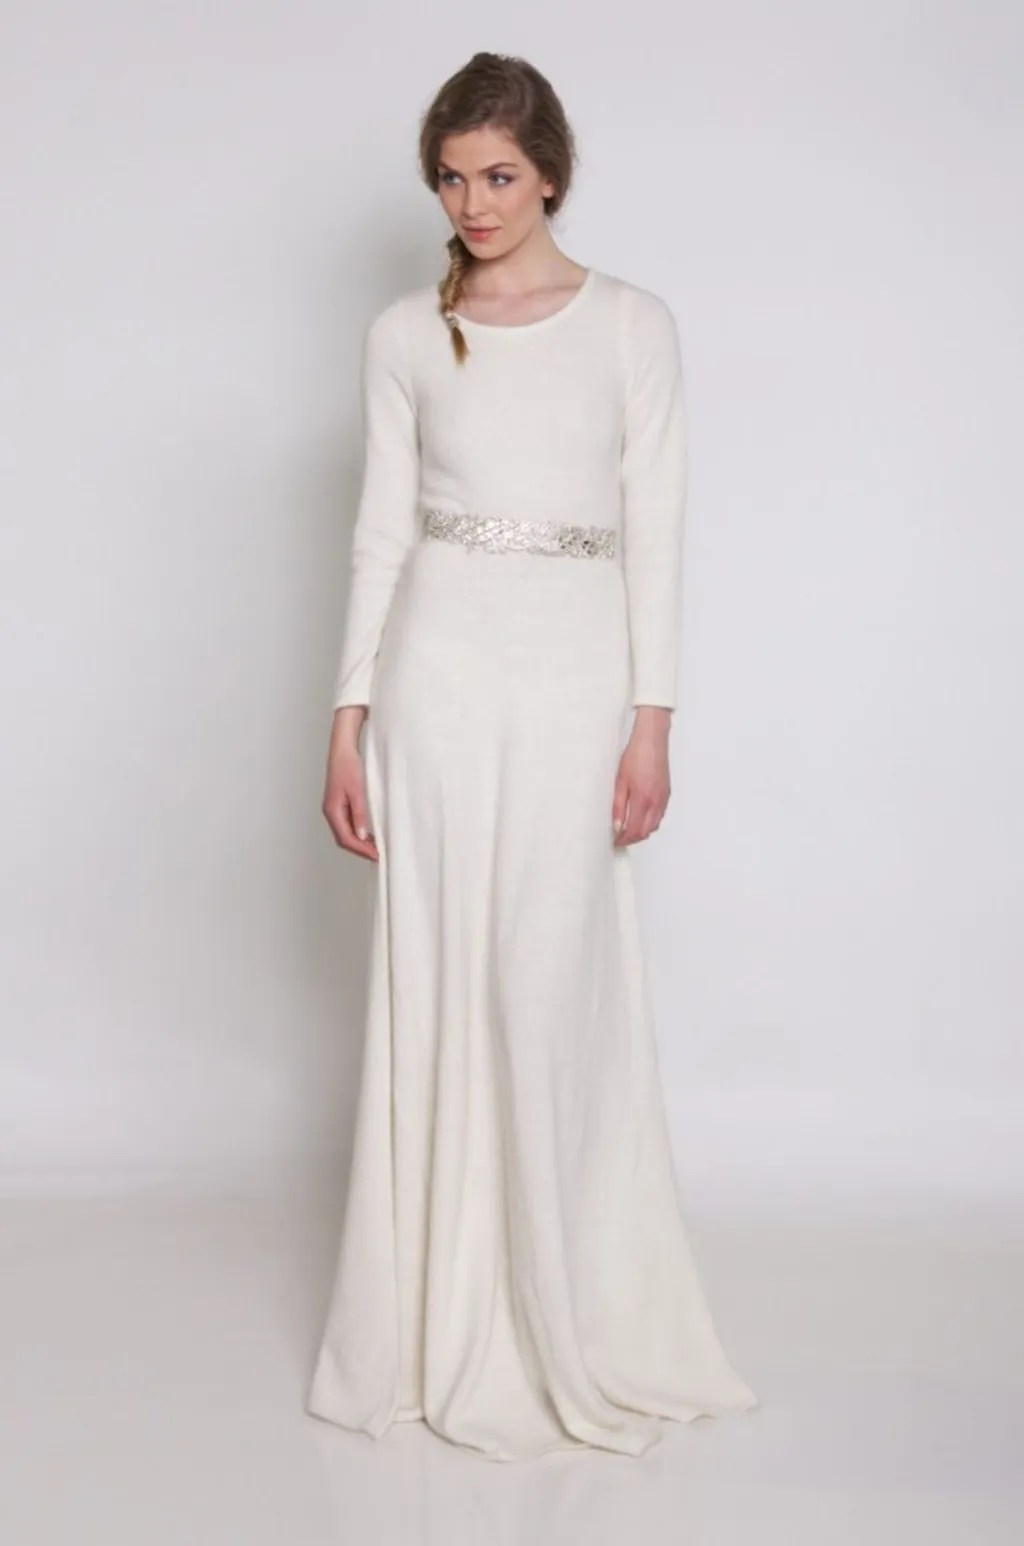 winter wedding dresses winter wedding dresses 1 Winter Wedding Dresses